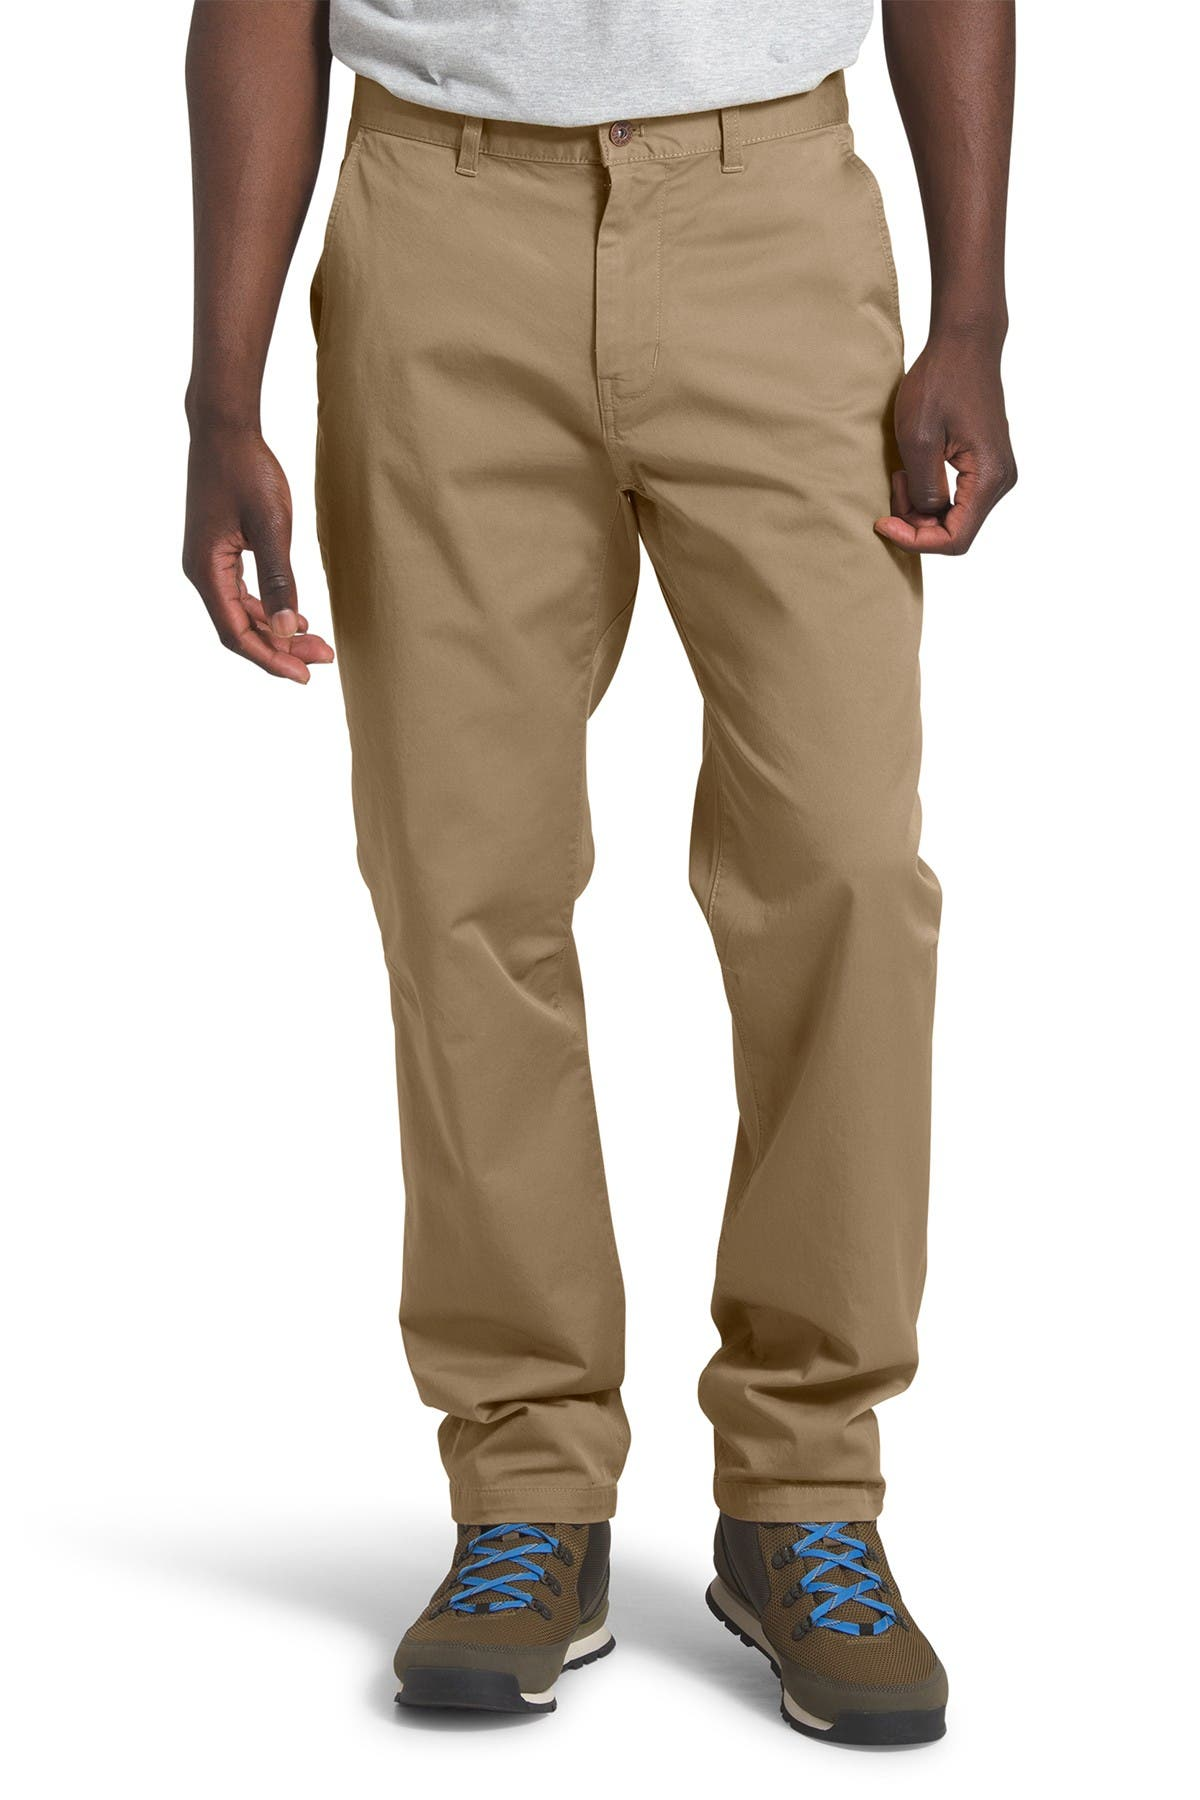 Image of The North Face Motion Solid Pants